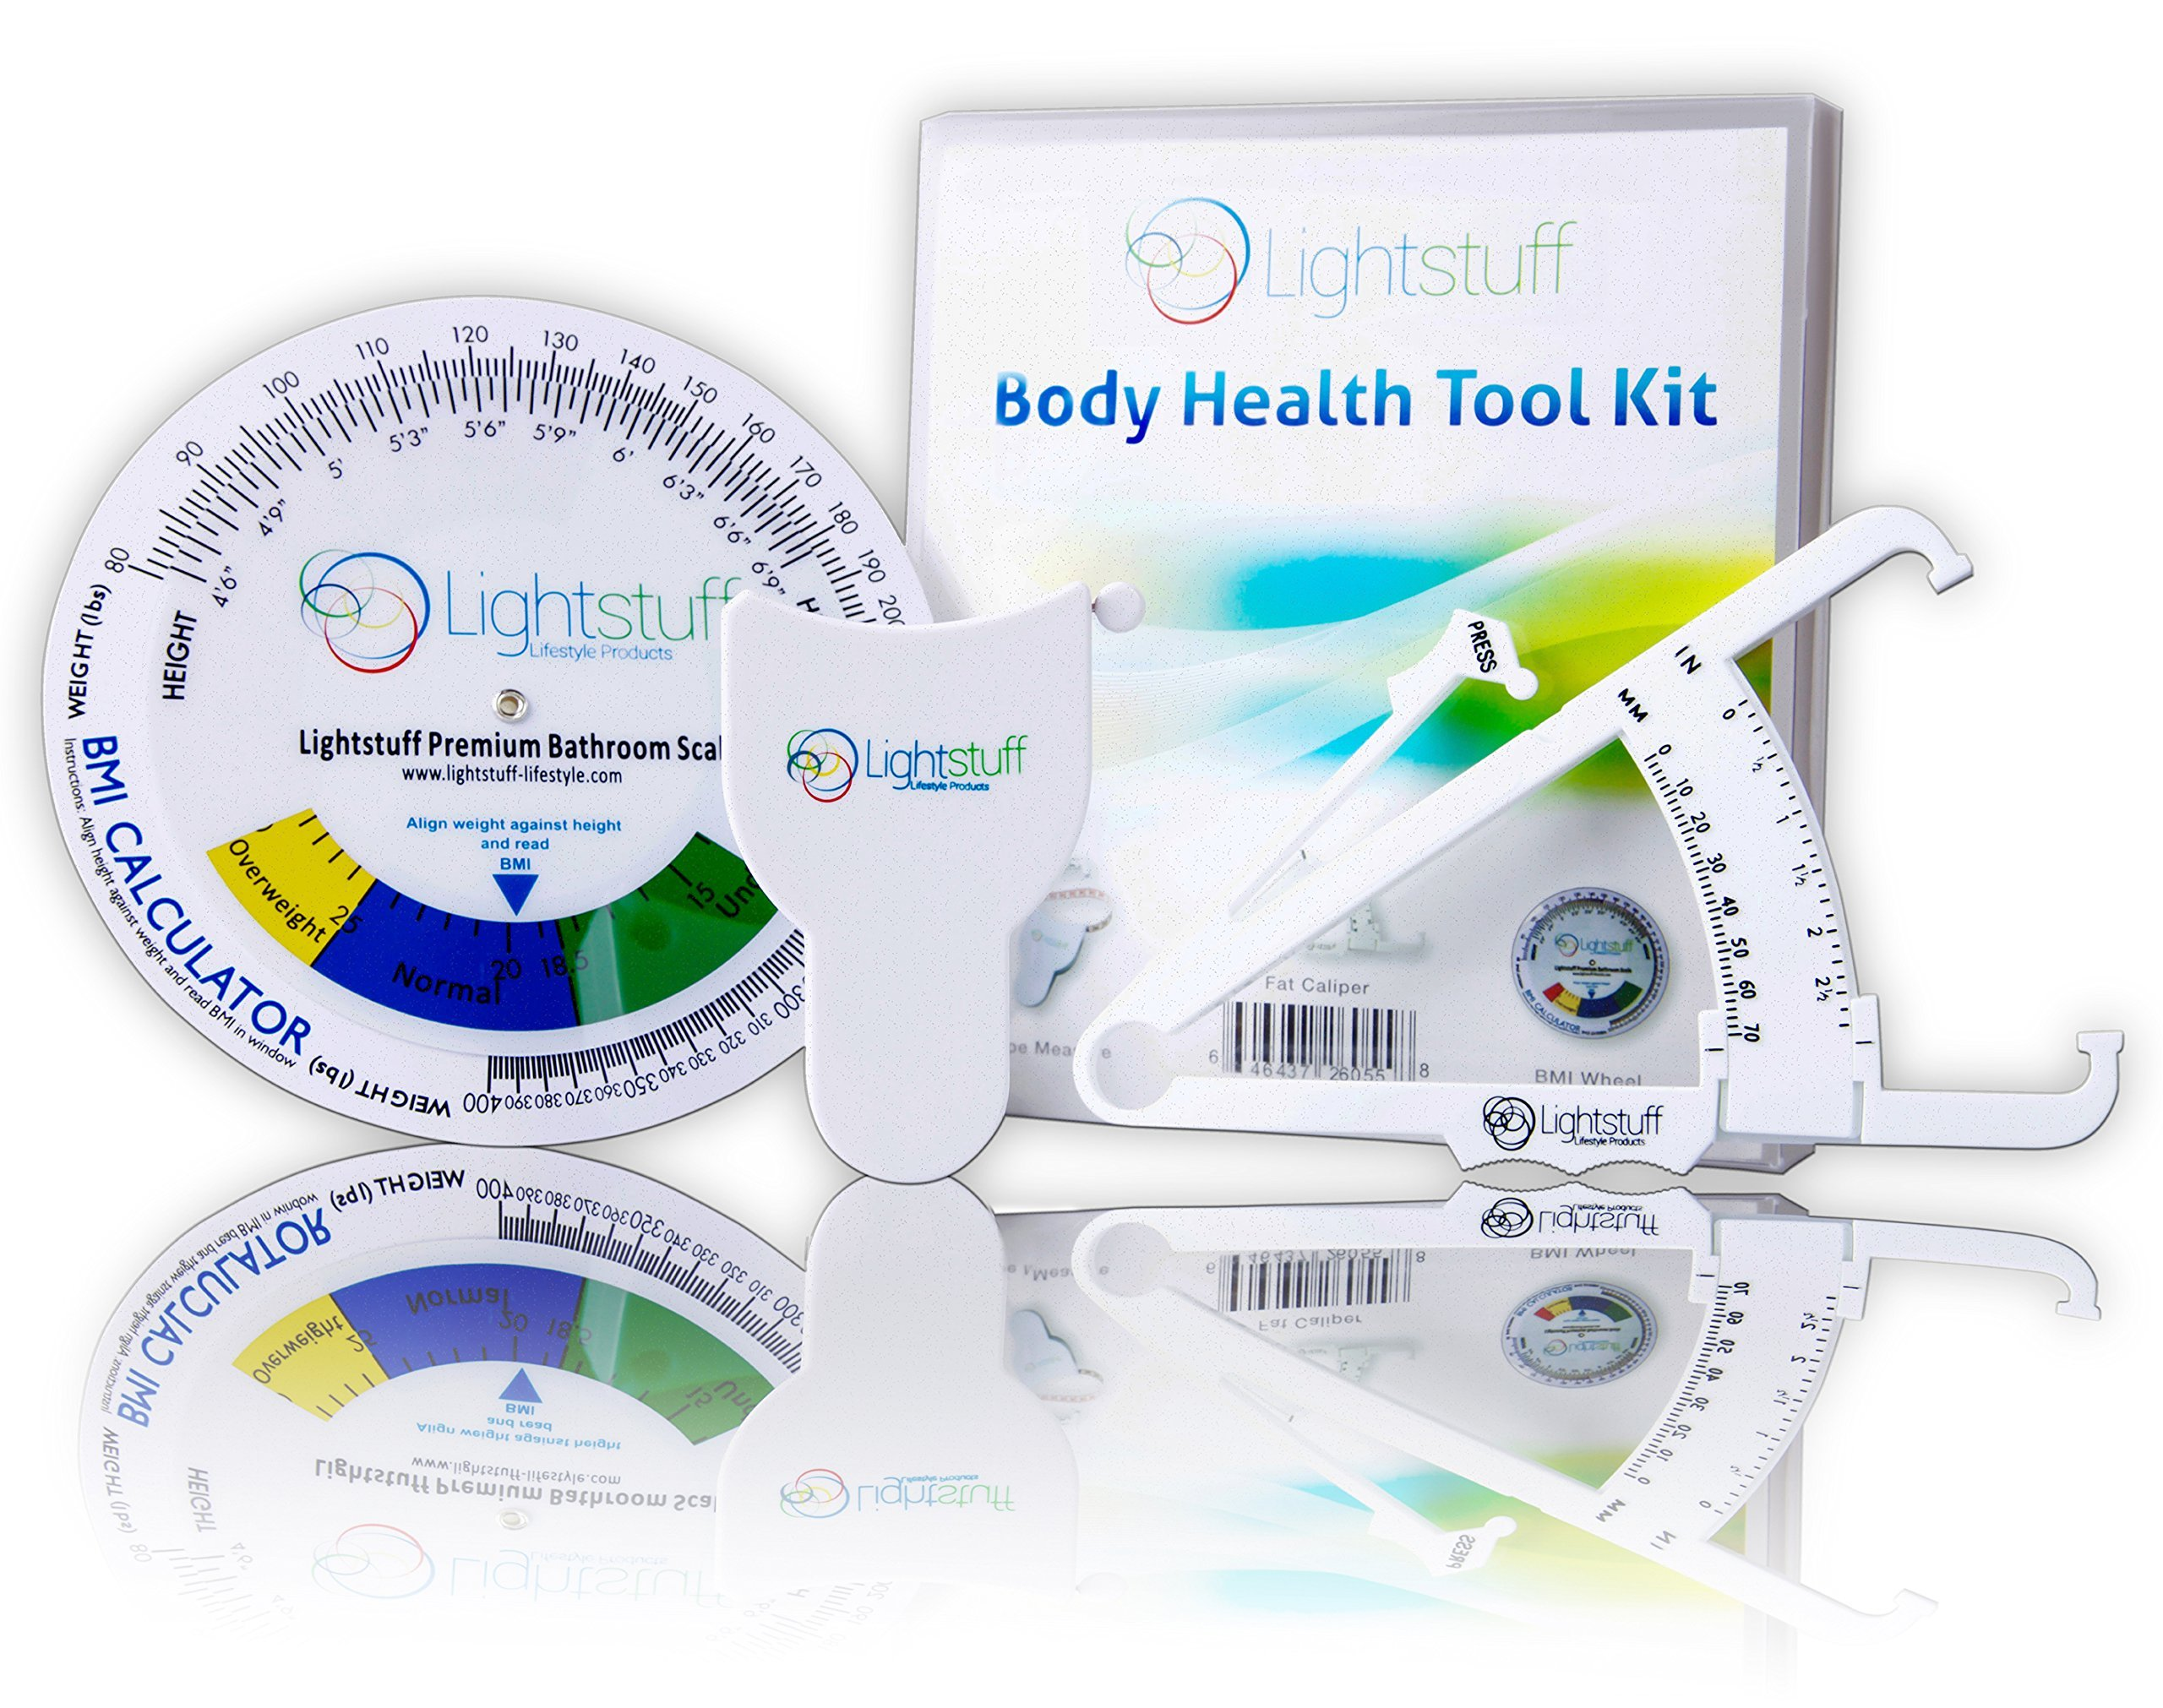 Body Fat Caliper, Body Tape Measure, BMI Calculator - Instructions For Skinfold Caliper and Body Fat Charts Included: Lightstuff Body Health Kit 2018 Version